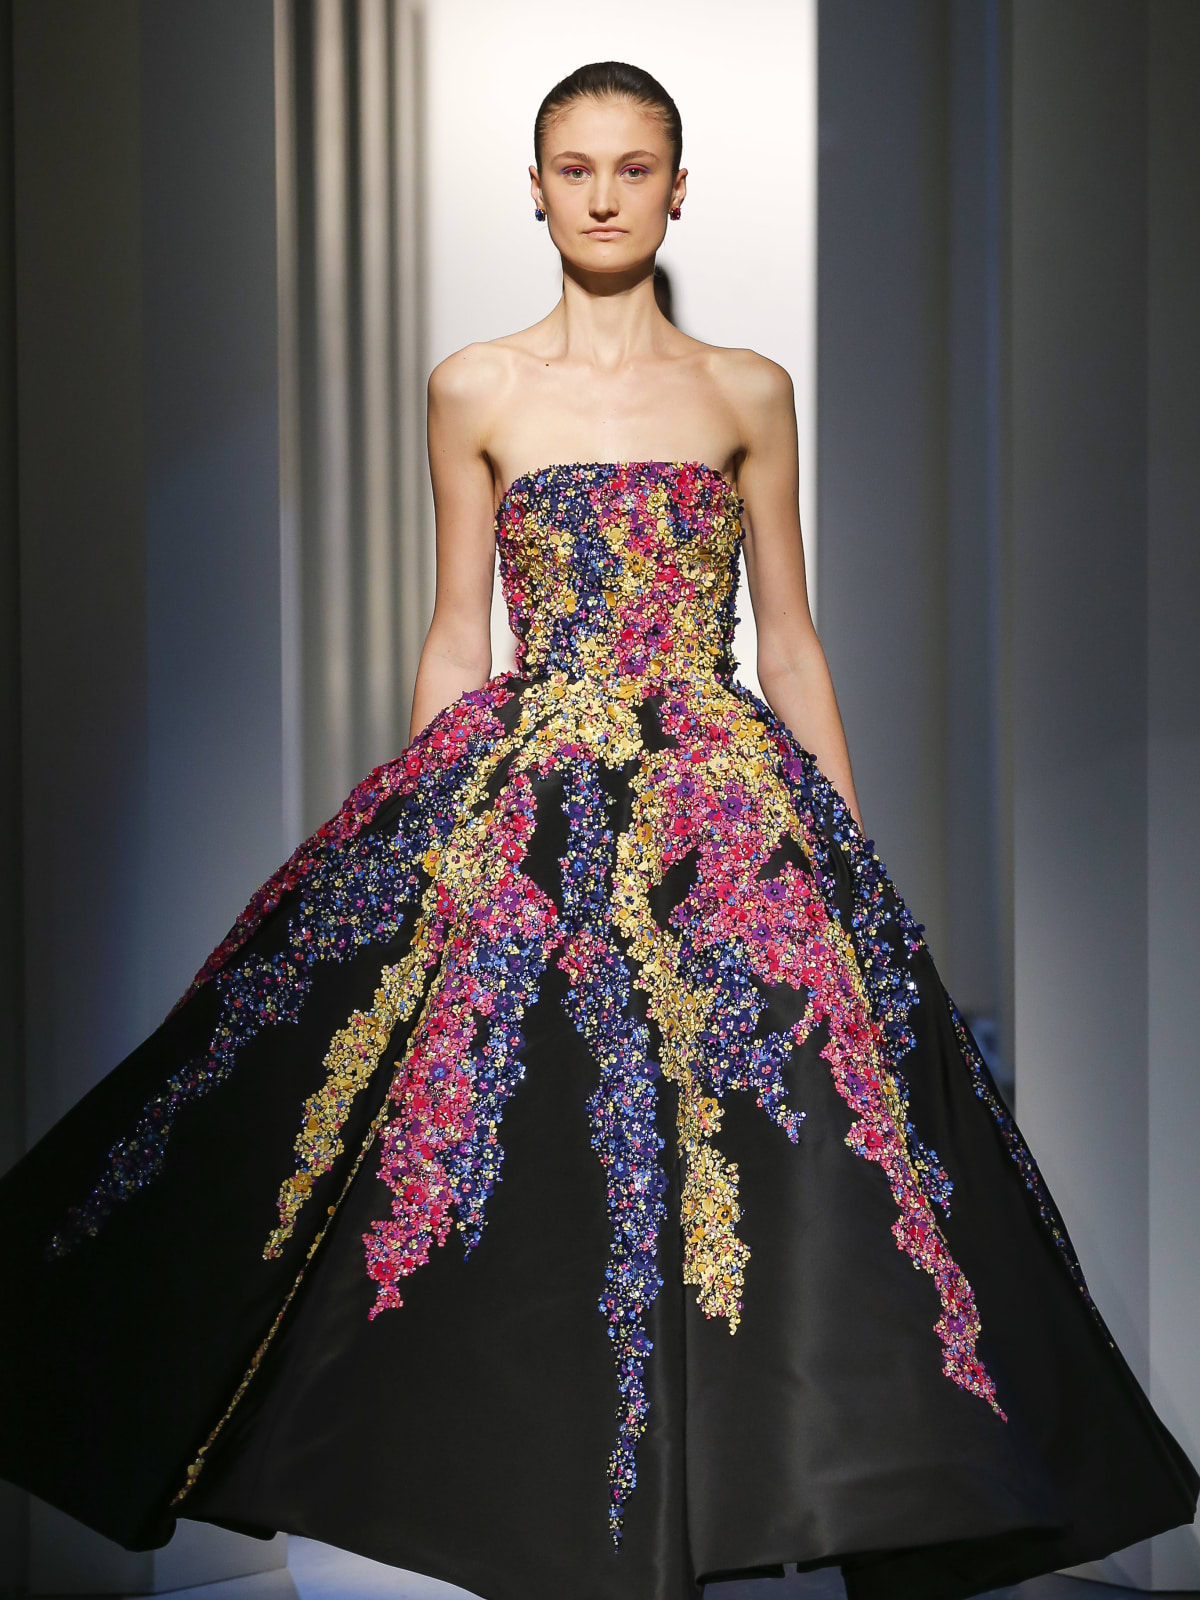 New design duo aims to recapture the magic at Oscar de la Renta ...